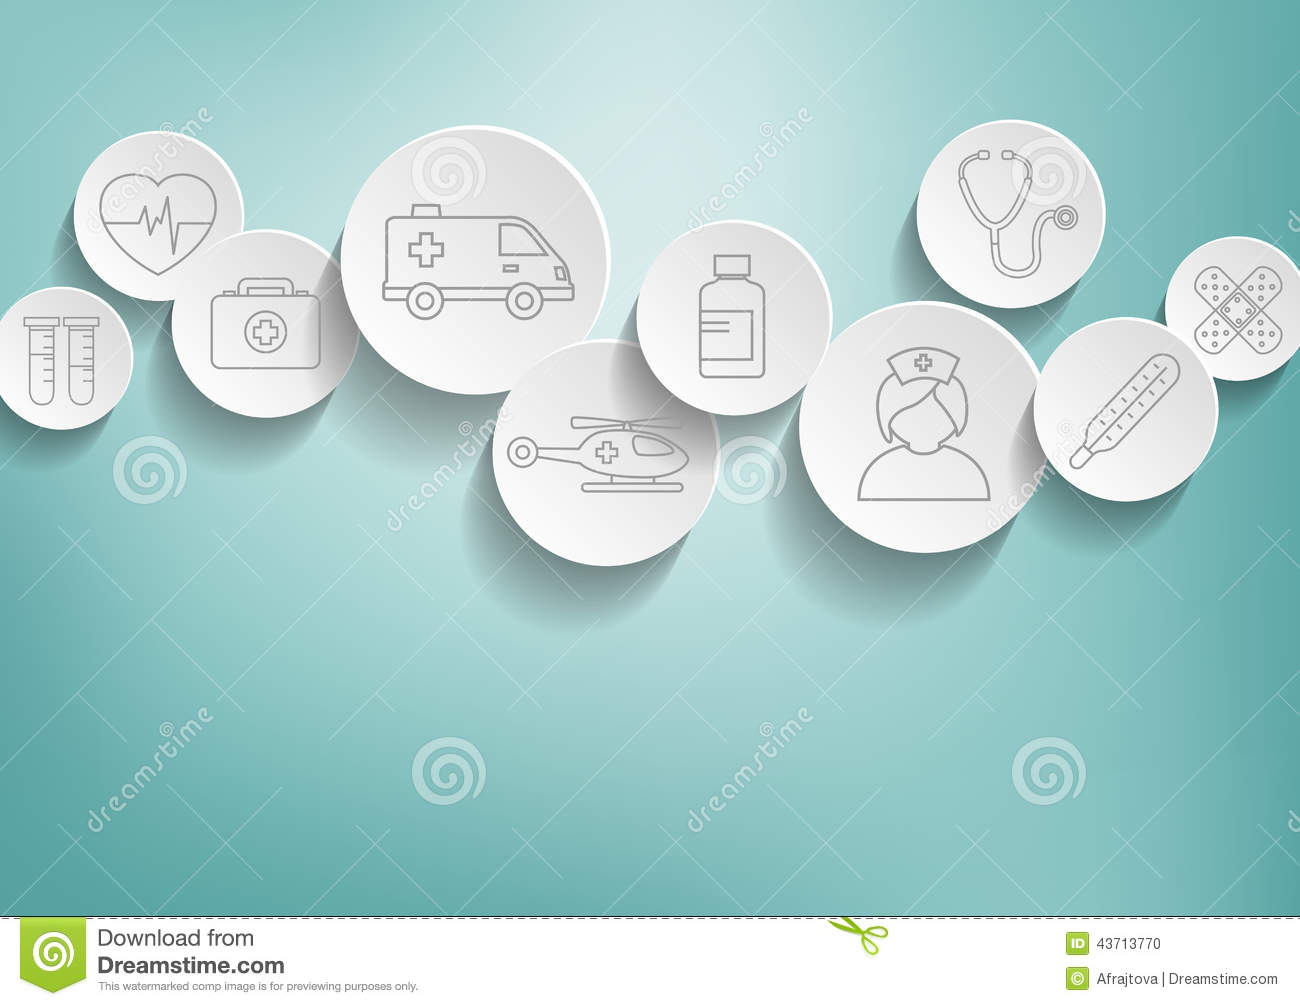 Medical background with icons representing medical and healthcare ...